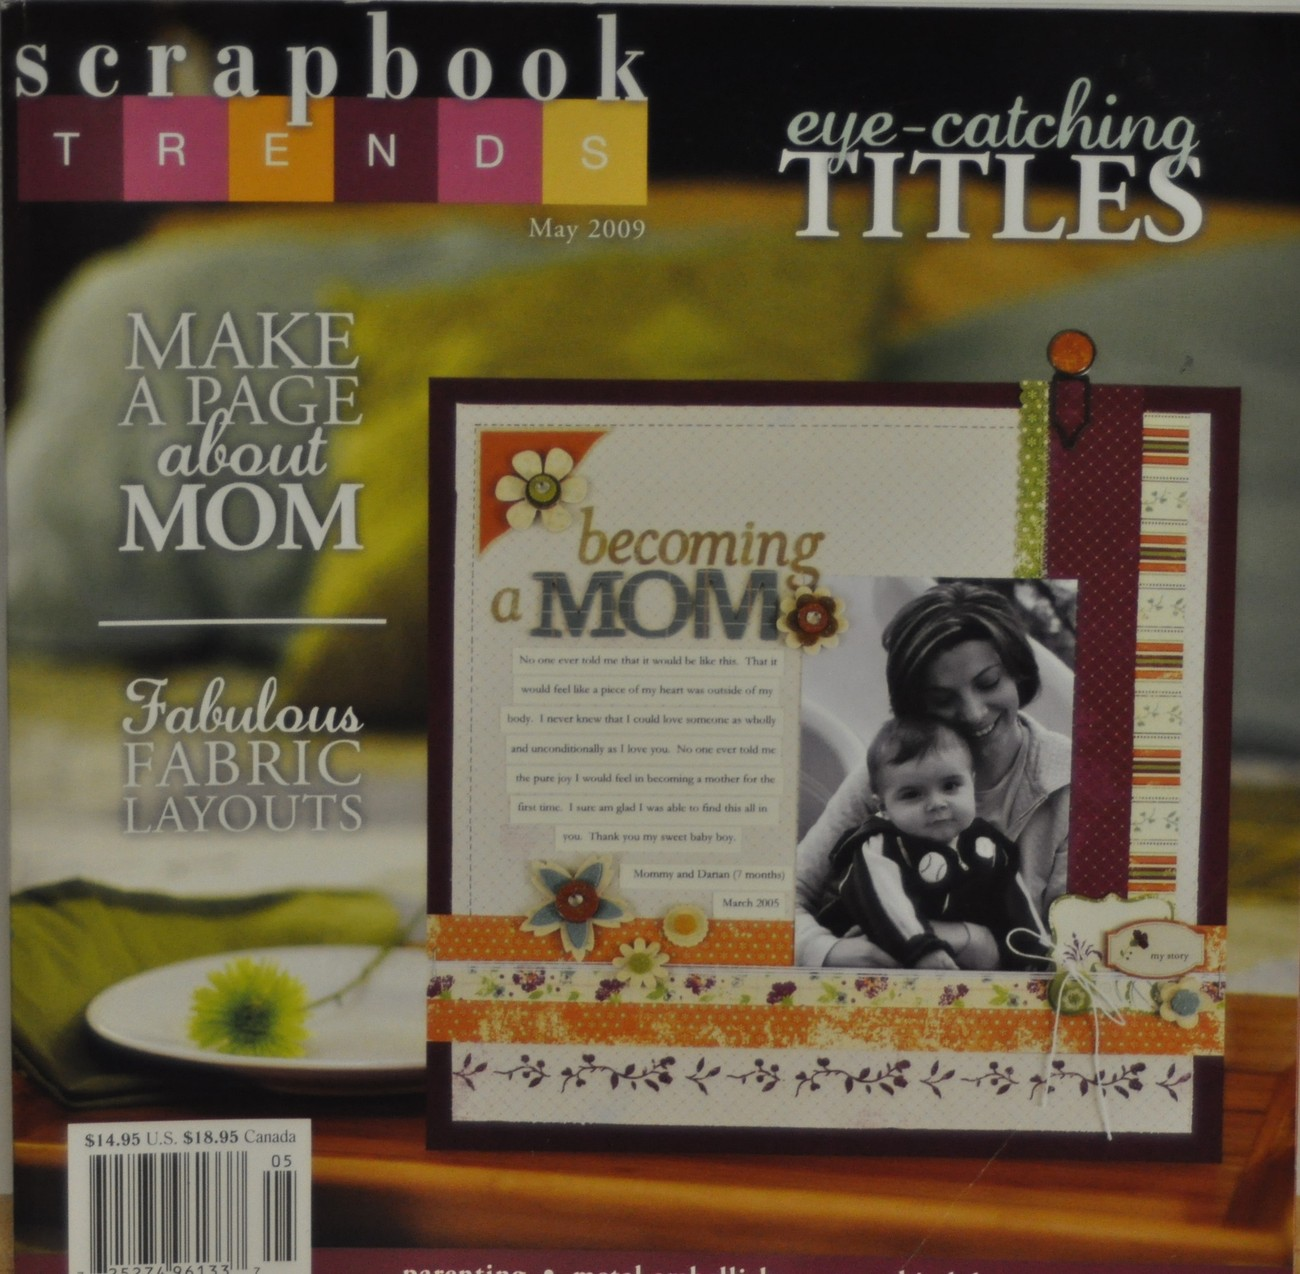 Scrapbook may 09